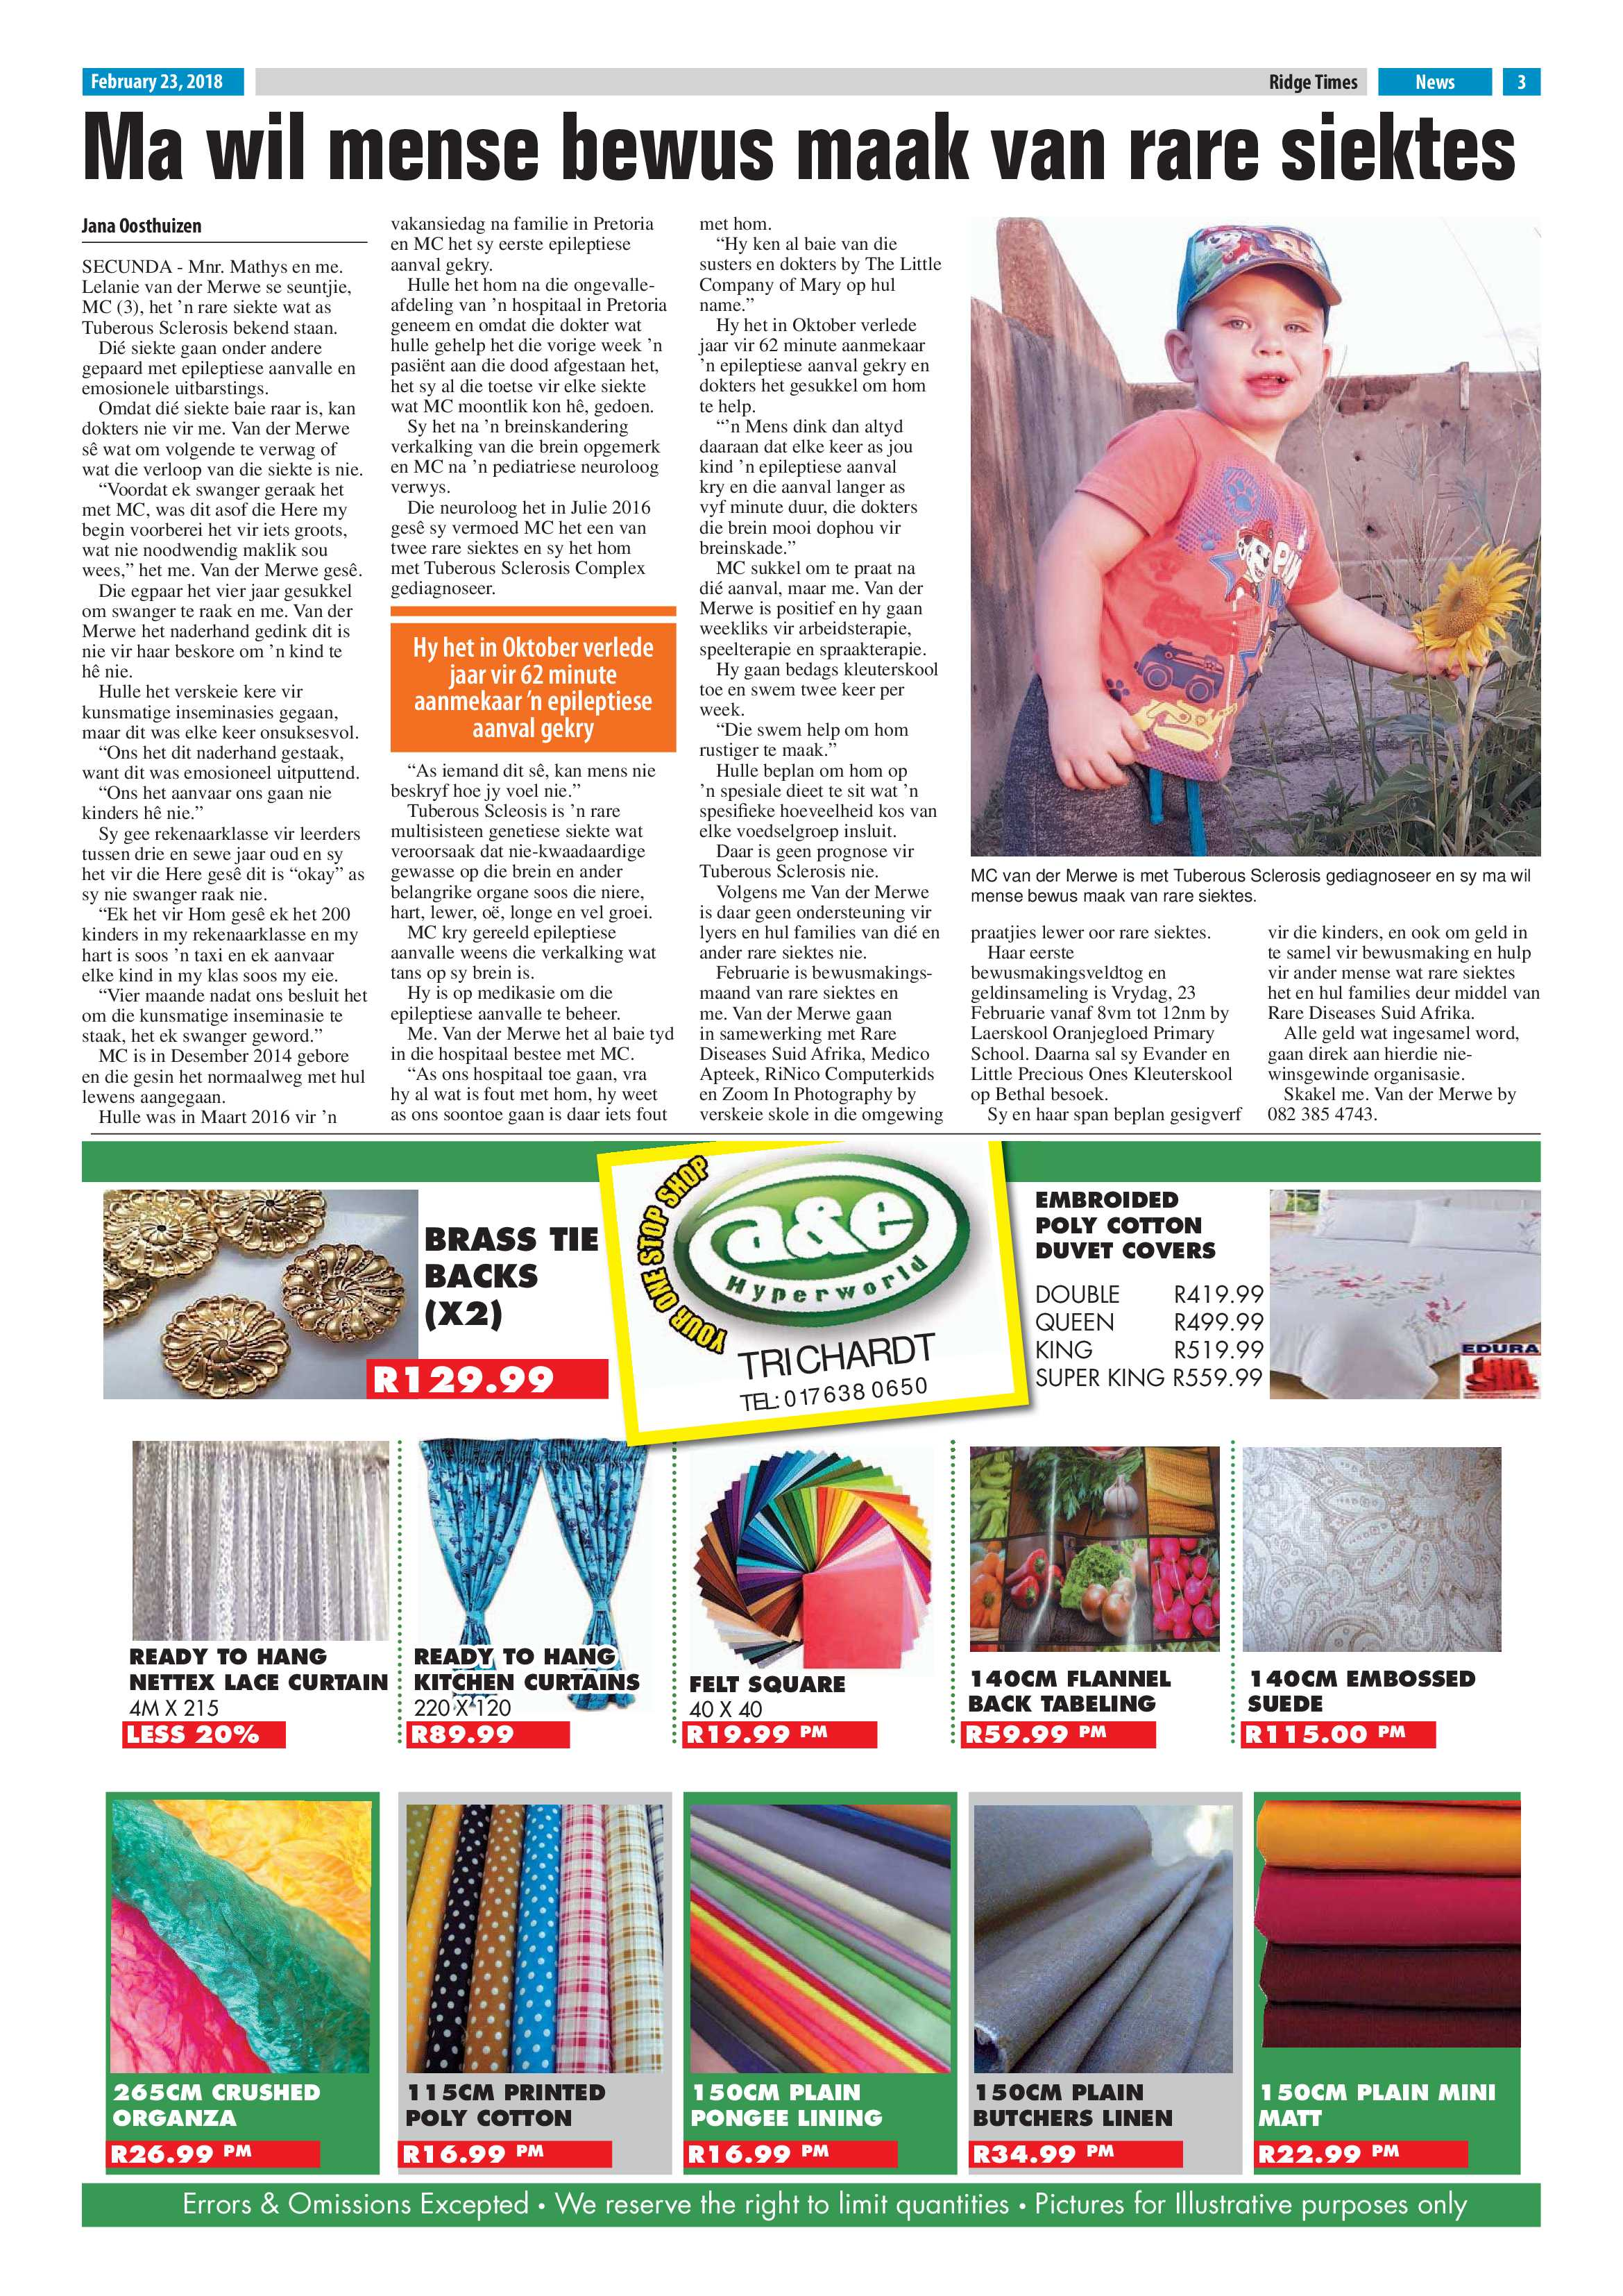 ridge-times-23-february-2018-epapers-page-3